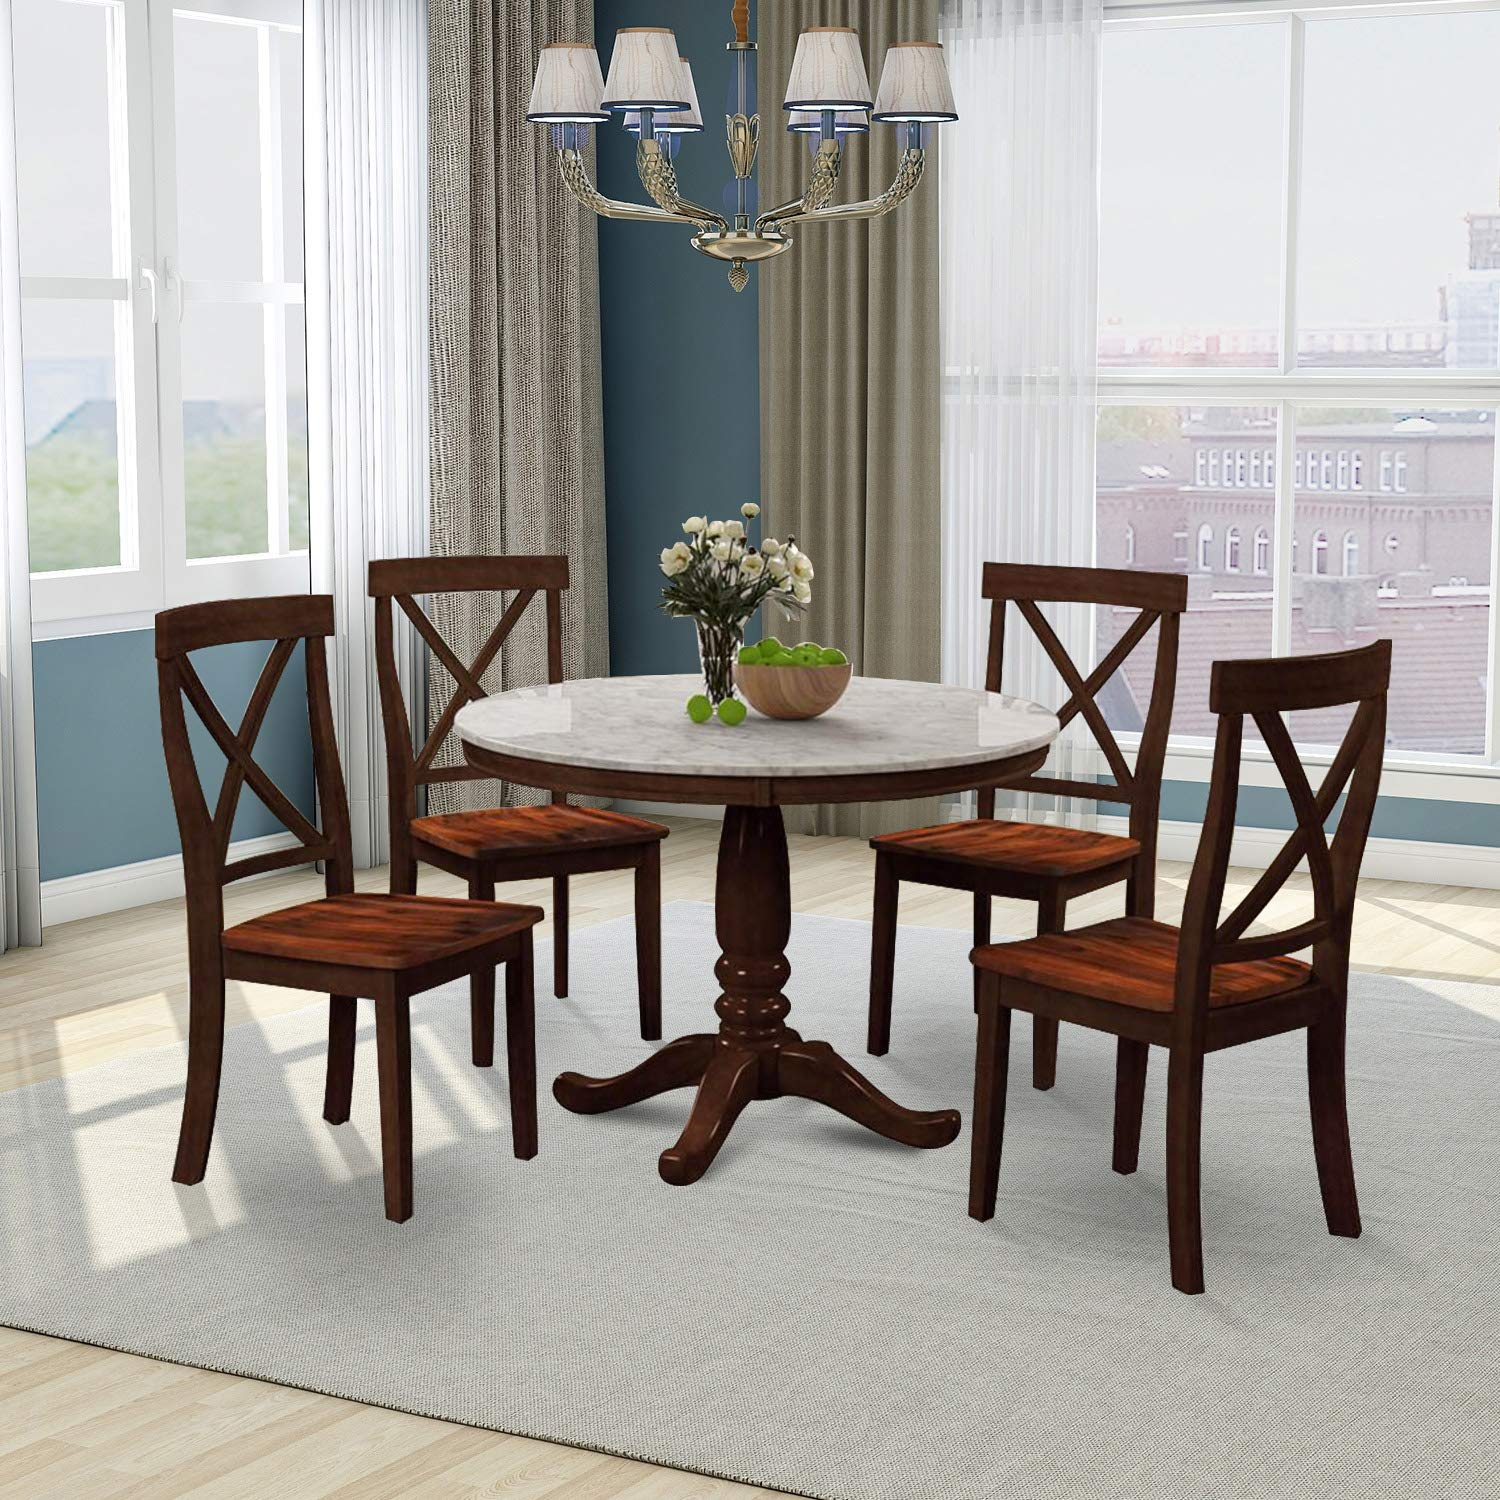 Round Dining Room Table Set Urhomepro, Modern Round Marble Top Dining Table Set 4 Chairs